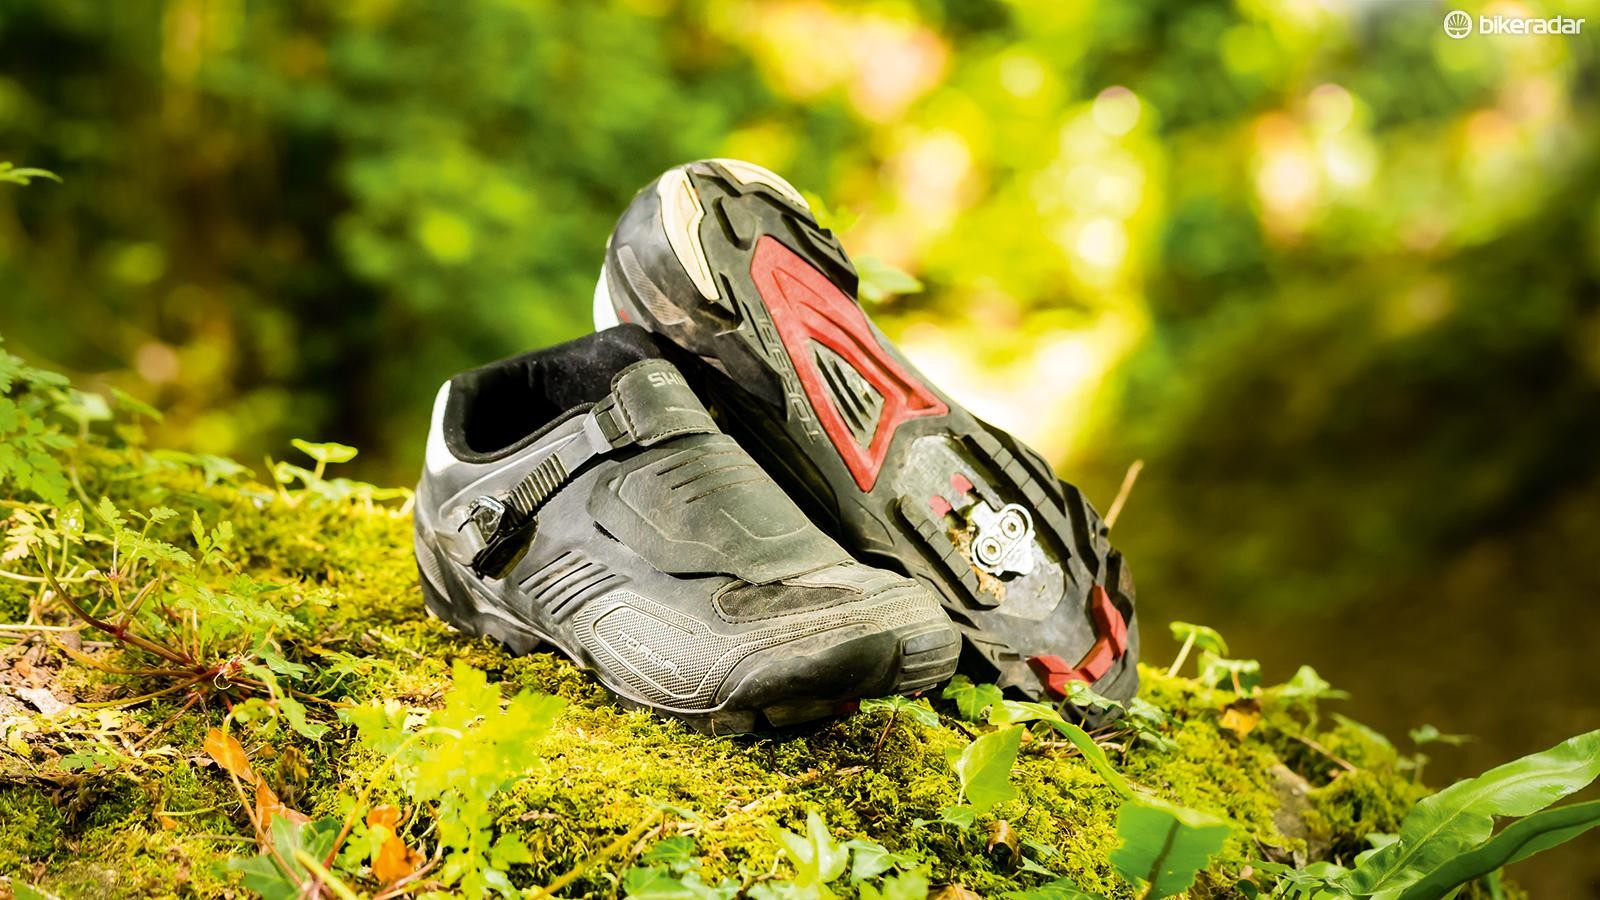 Shimano's M200 shoes really deliver the goods